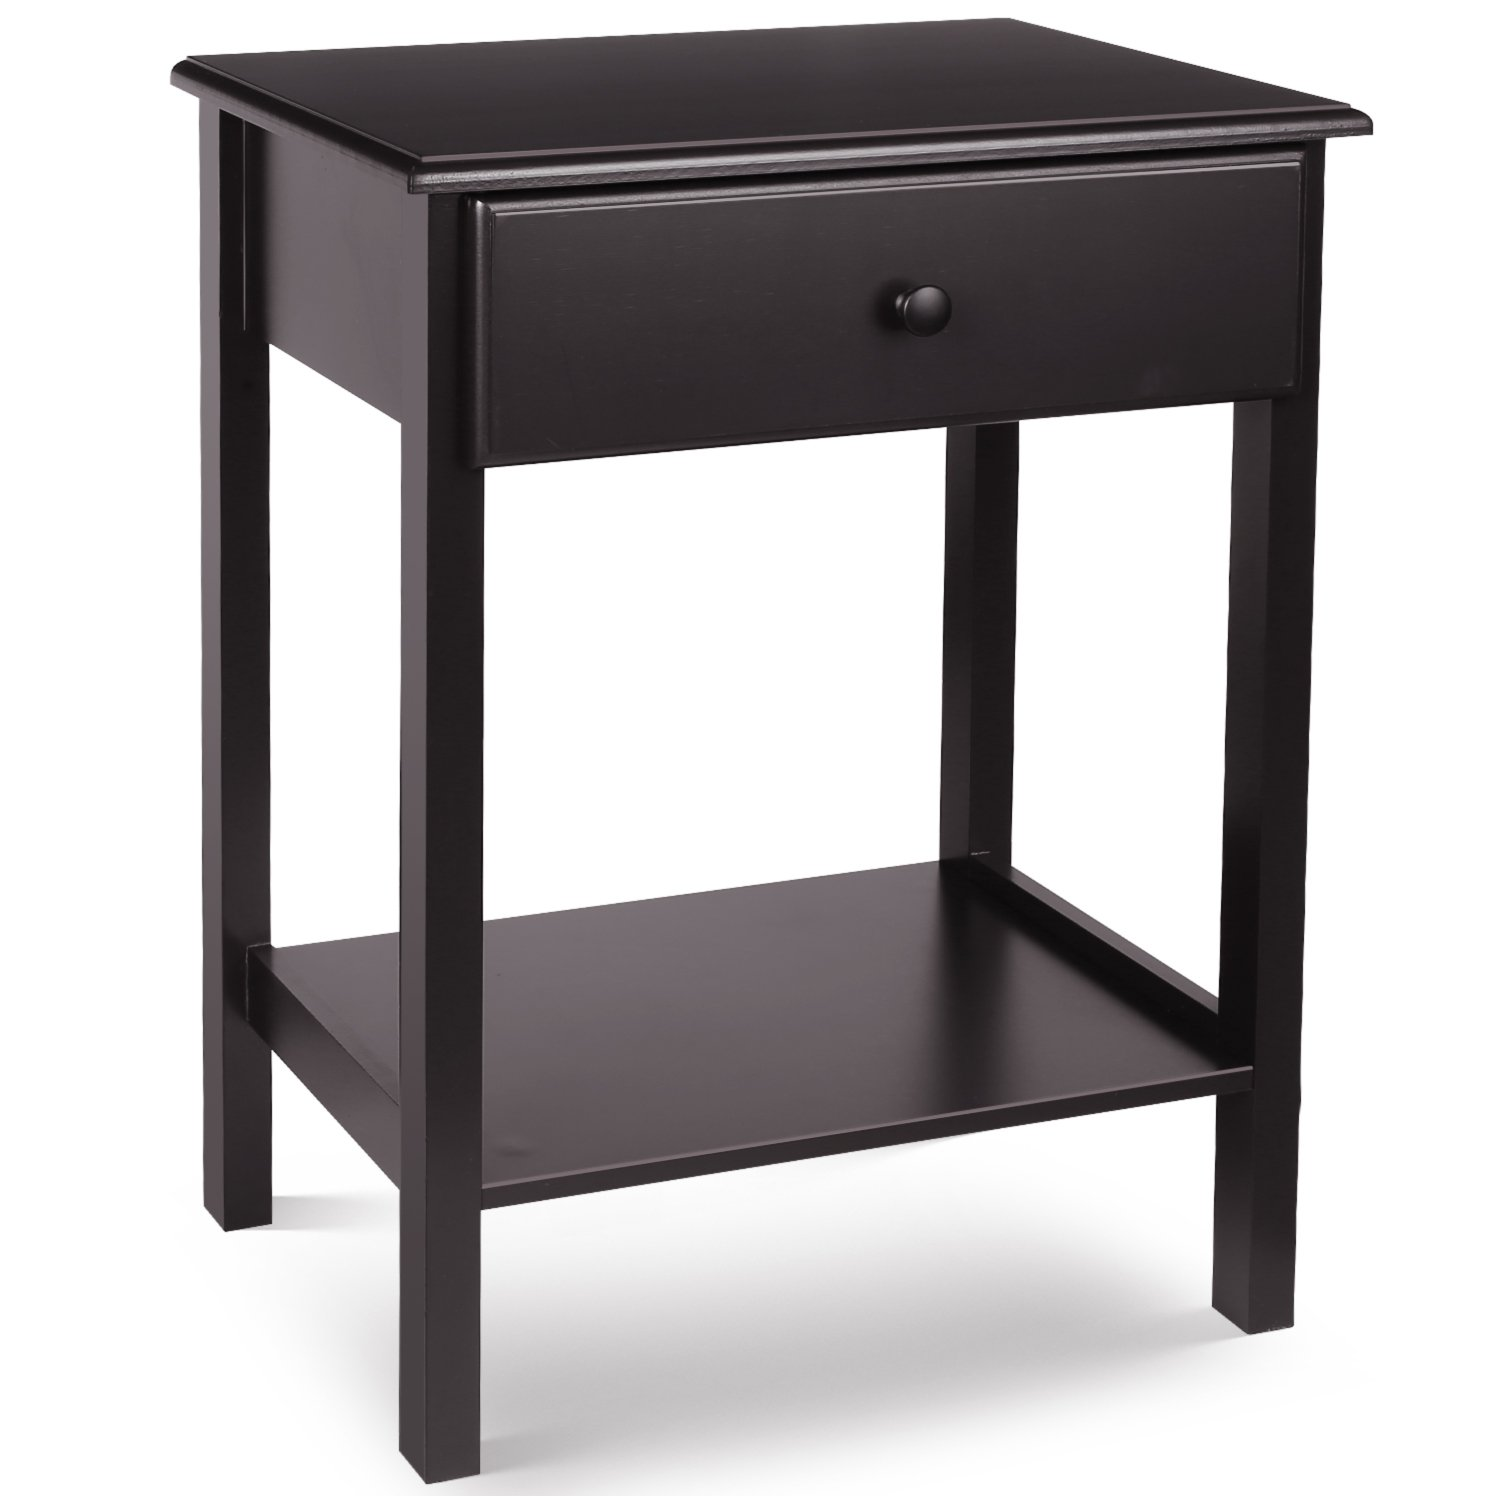 HOMFA Night Stand End Table Wooden Bedside Table with Drawer and Storage Shelf Multifunctional Antique Home Furniture, Dark Brown by Homfa